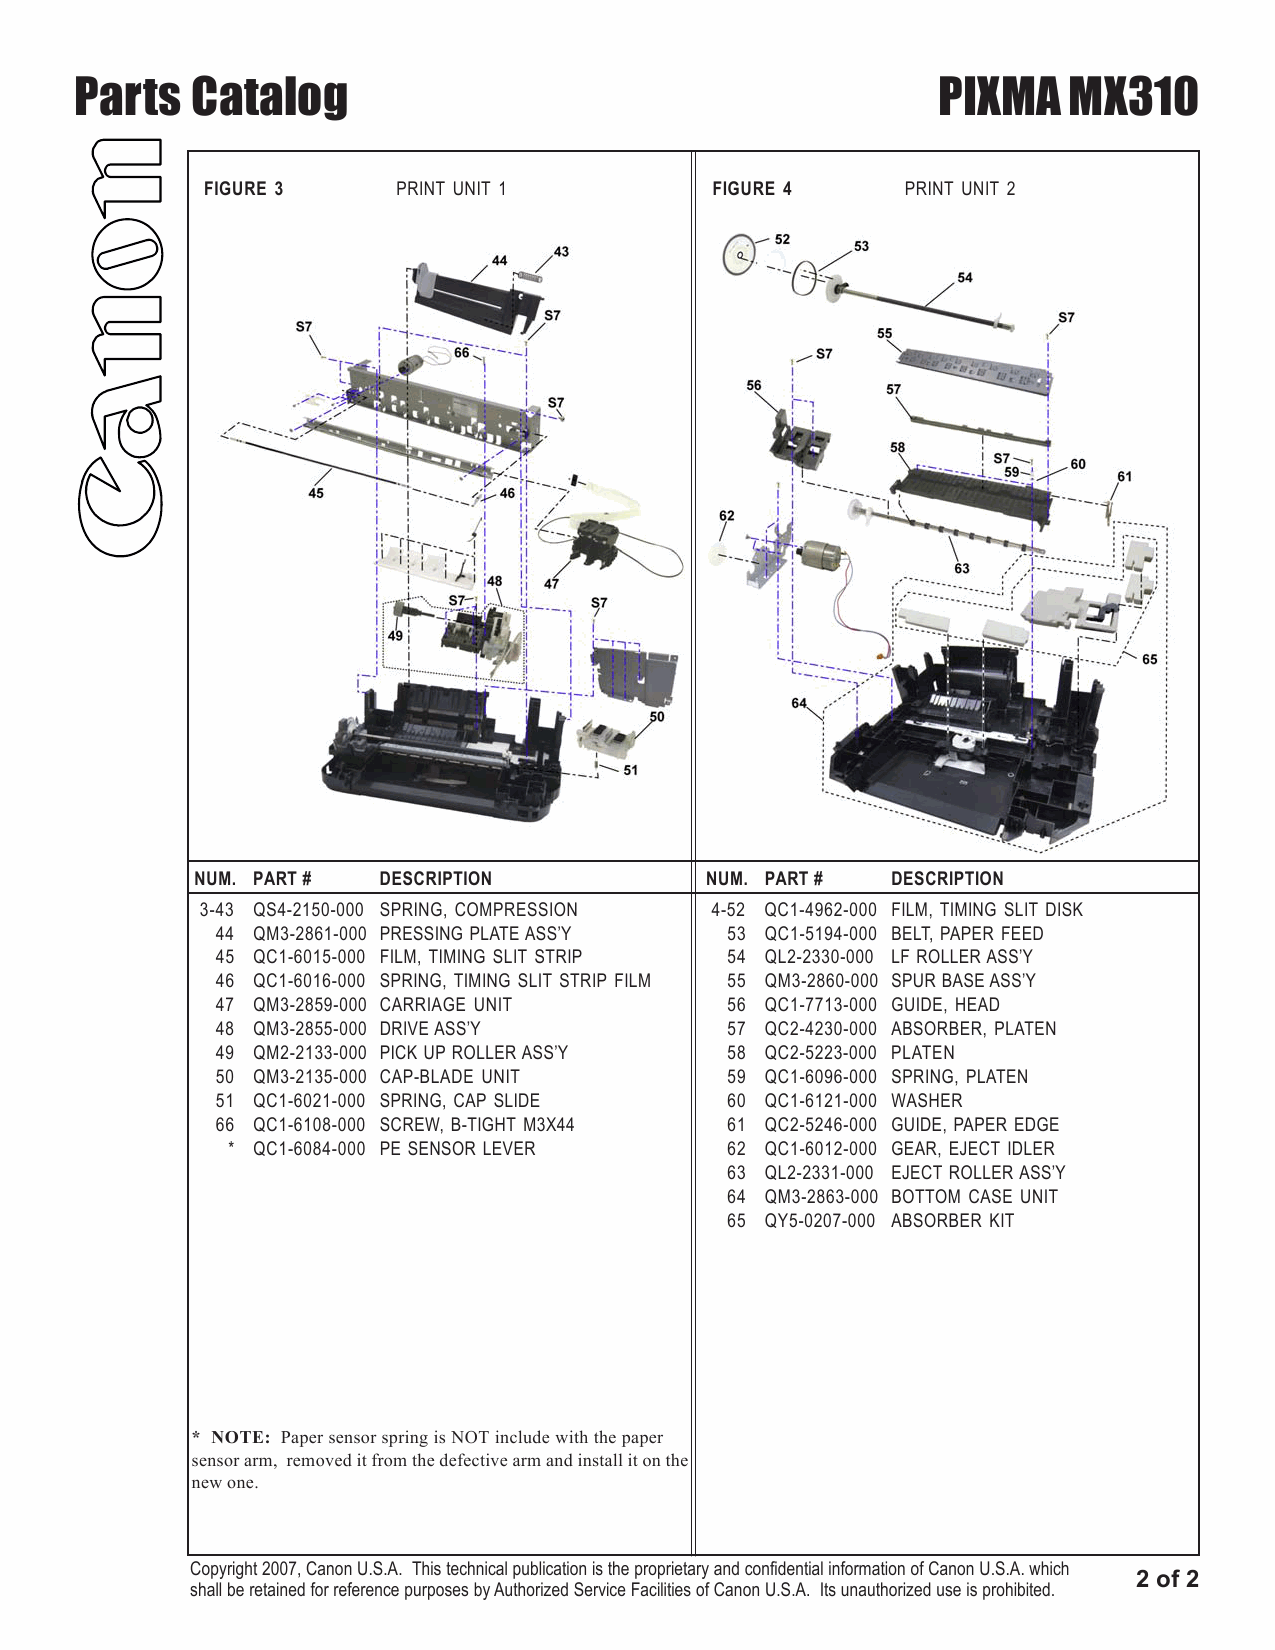 Canon PIXMA MX310 Parts Catalog-3